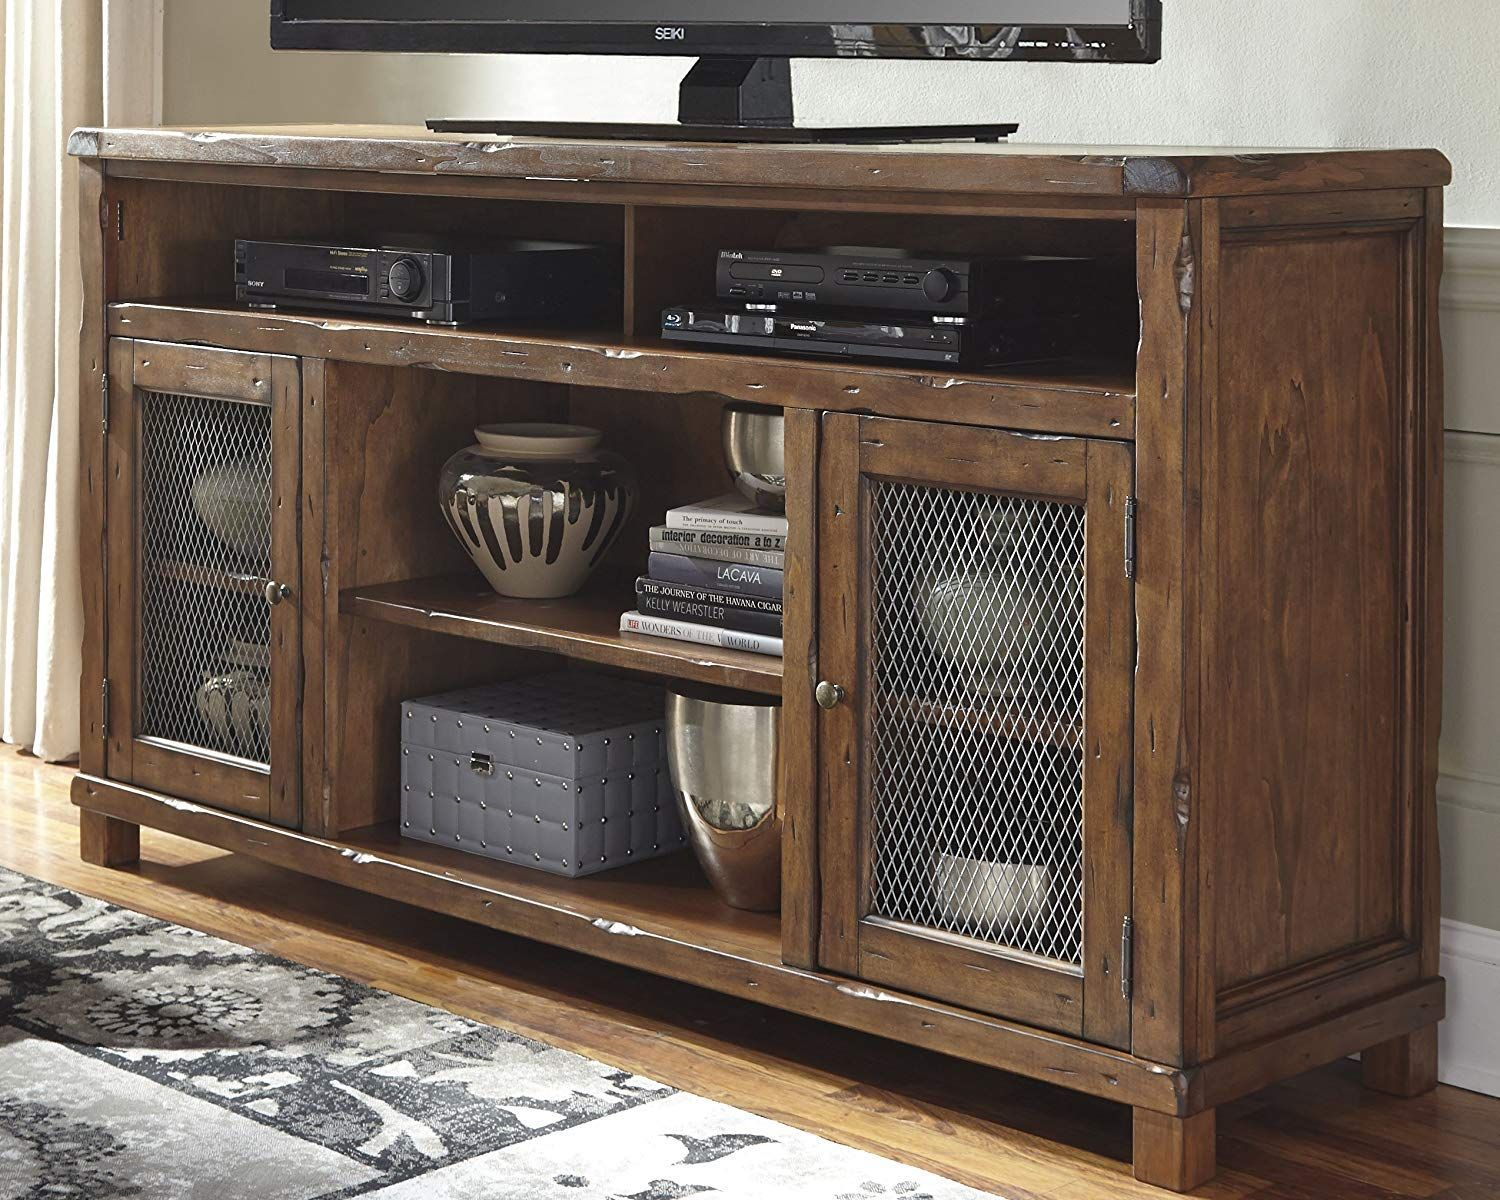 Farmhouse Tv Stands Rustic Tv Stands Farmhouse Goals Large Tv Stands Rustic Tv Stand Tv Stand